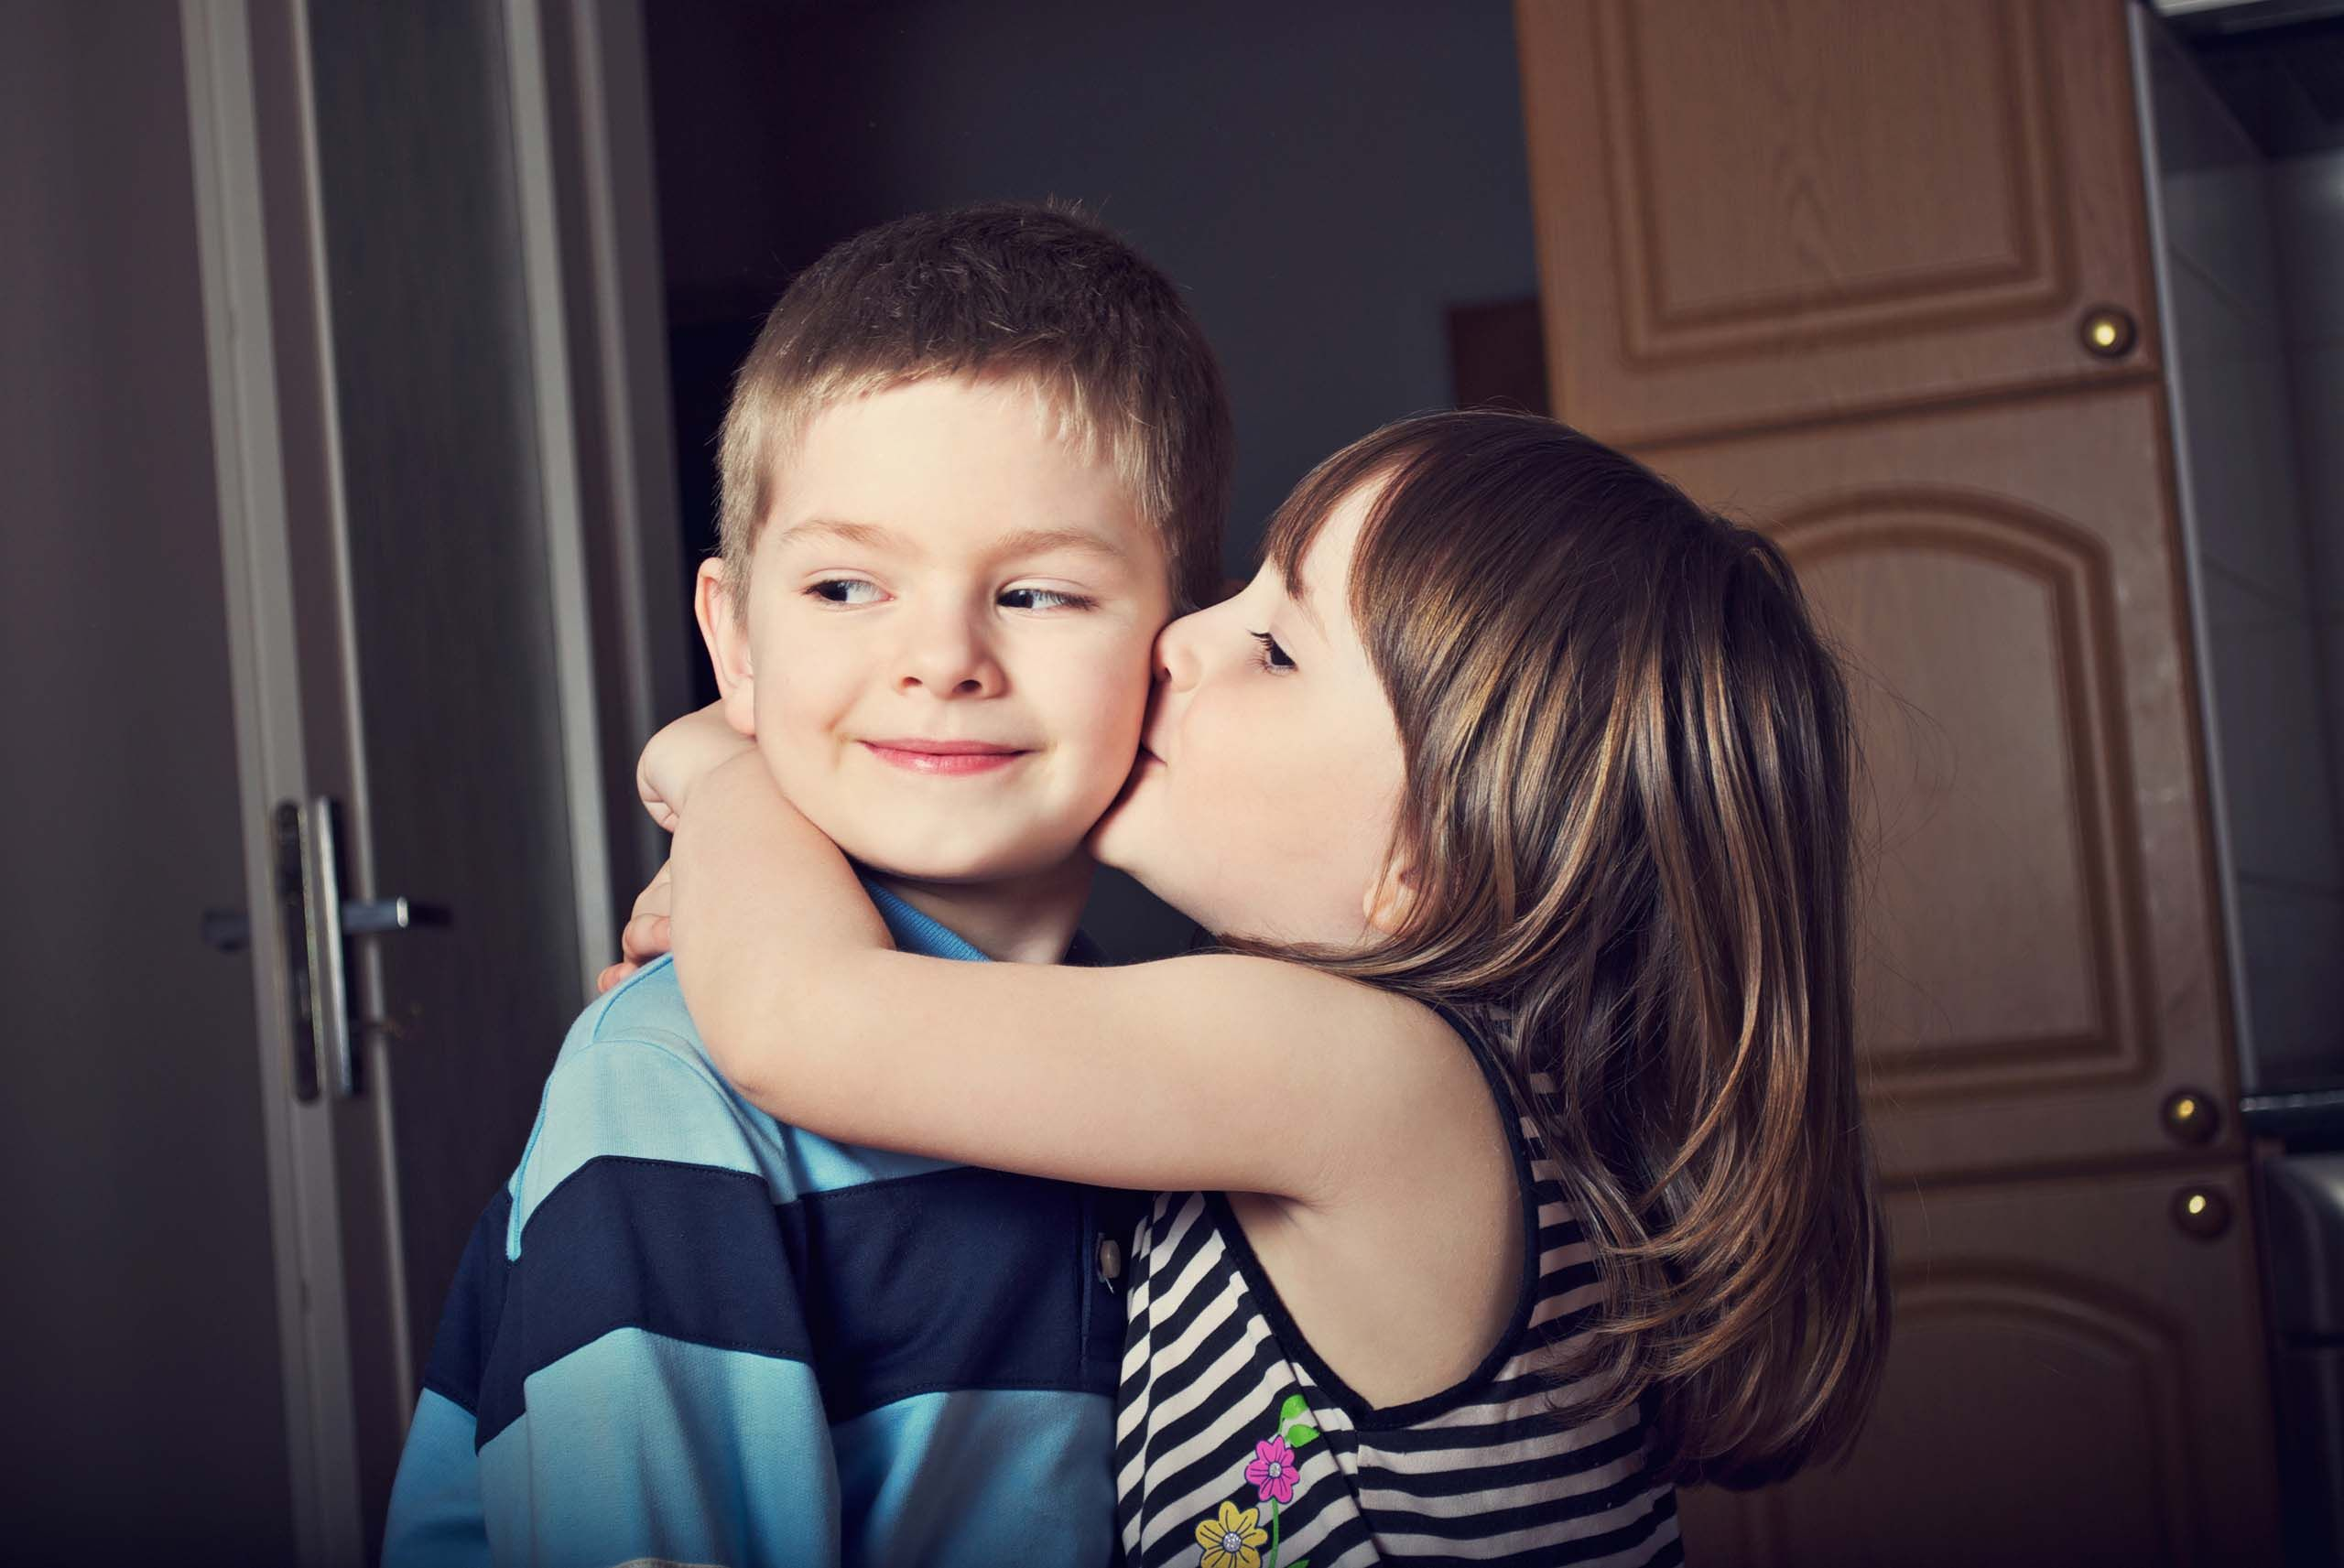 Baby Couple Wallpaper High Resolution Free Download Romantic